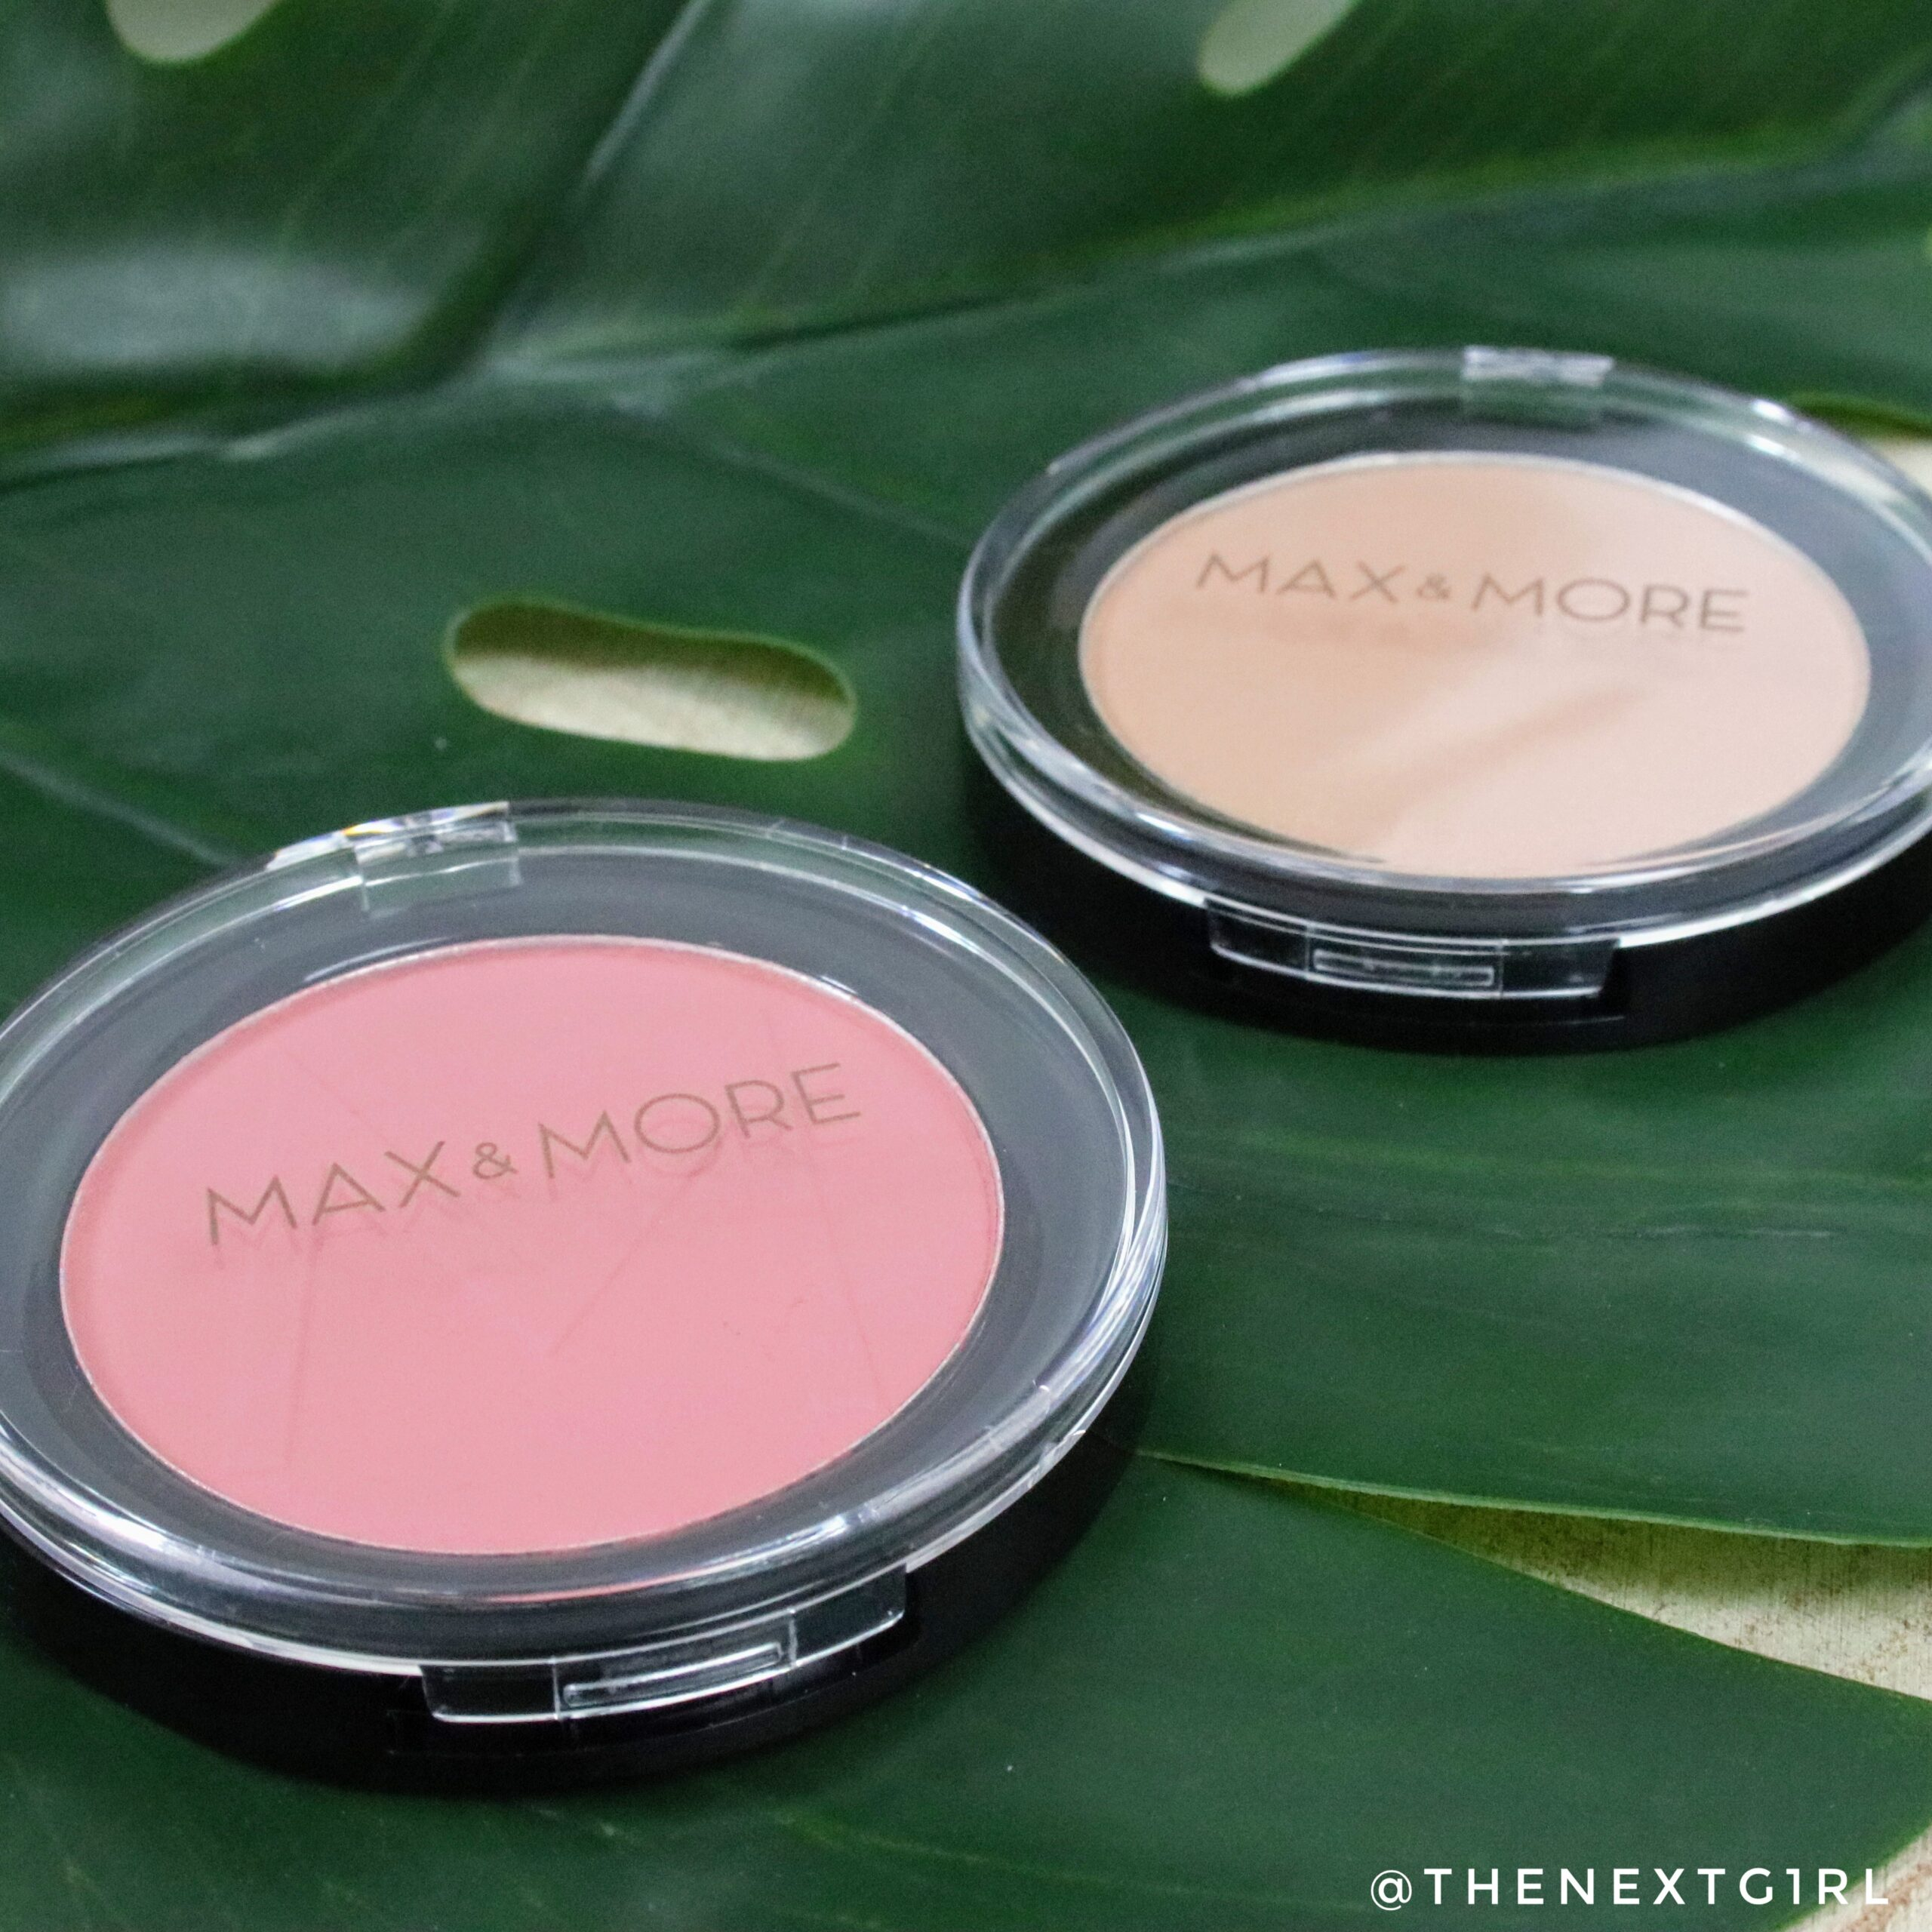 Max & More Pink Coral blush + highlighter van Action